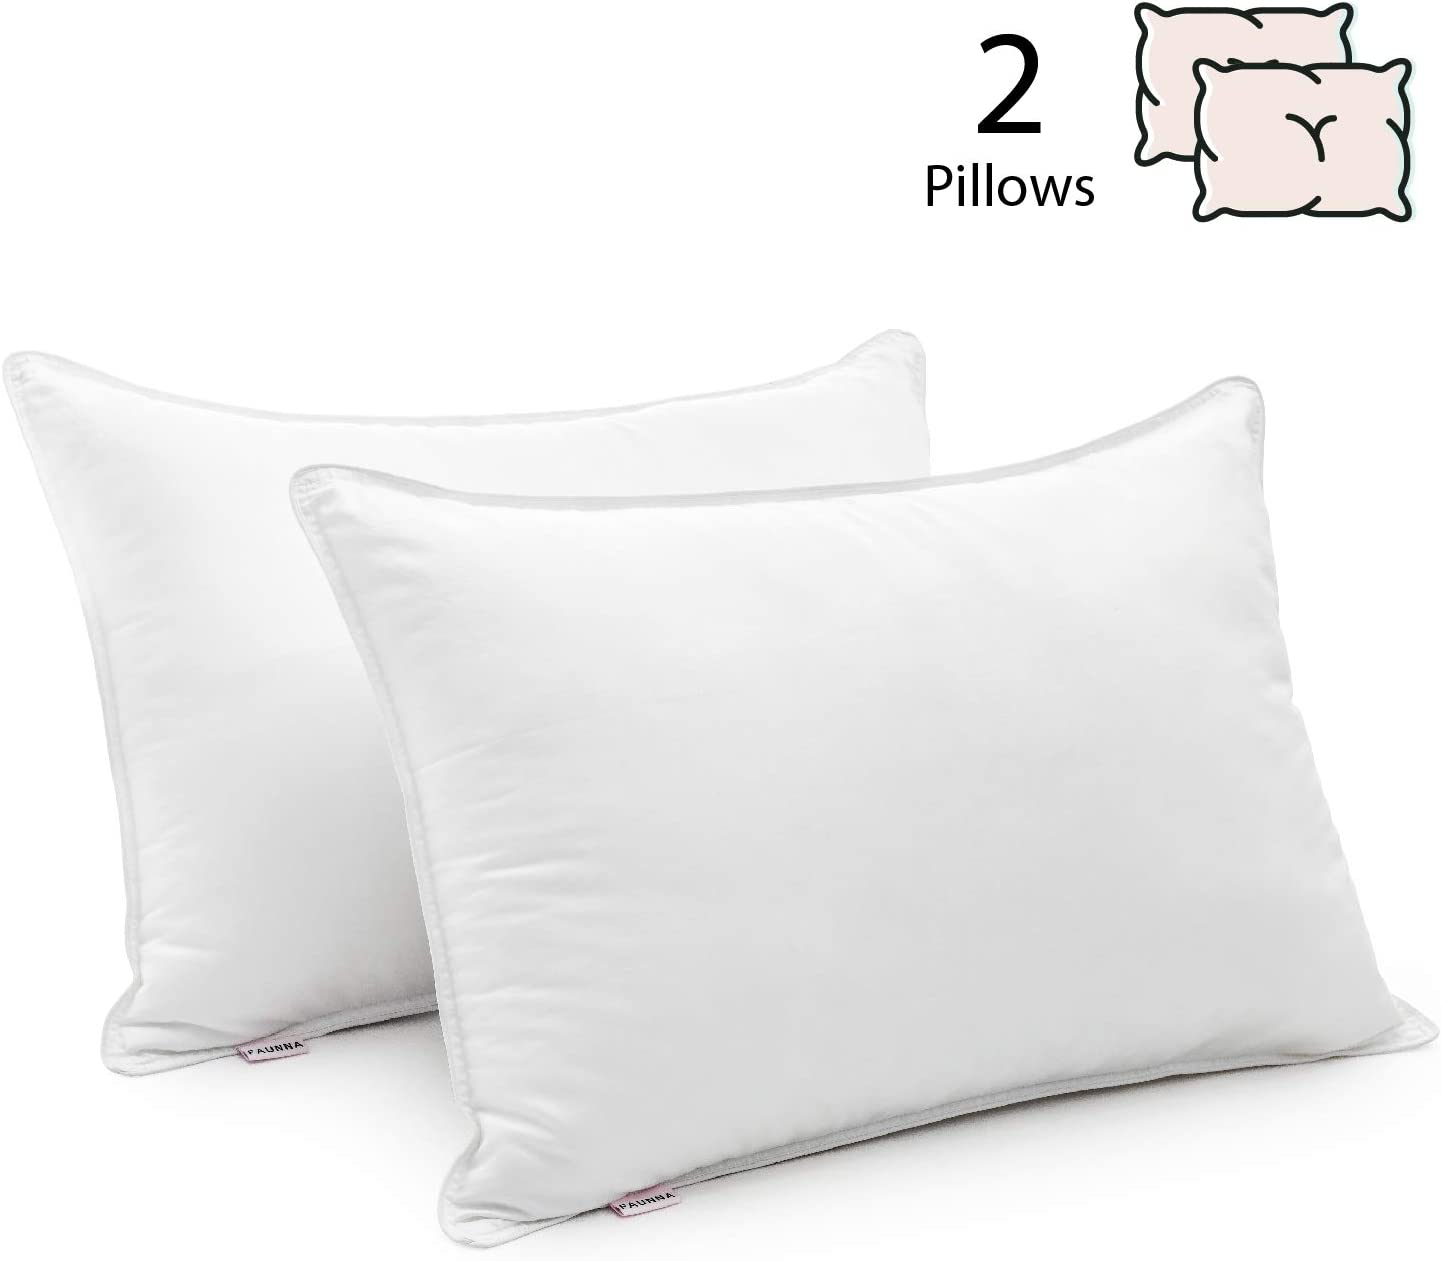 FAUNNA, Bed Pillows for Sleeping King Size 2 Pack, Side Sleeper Cooling Pillow with Soft Gel Fiber Down Alternative Fill